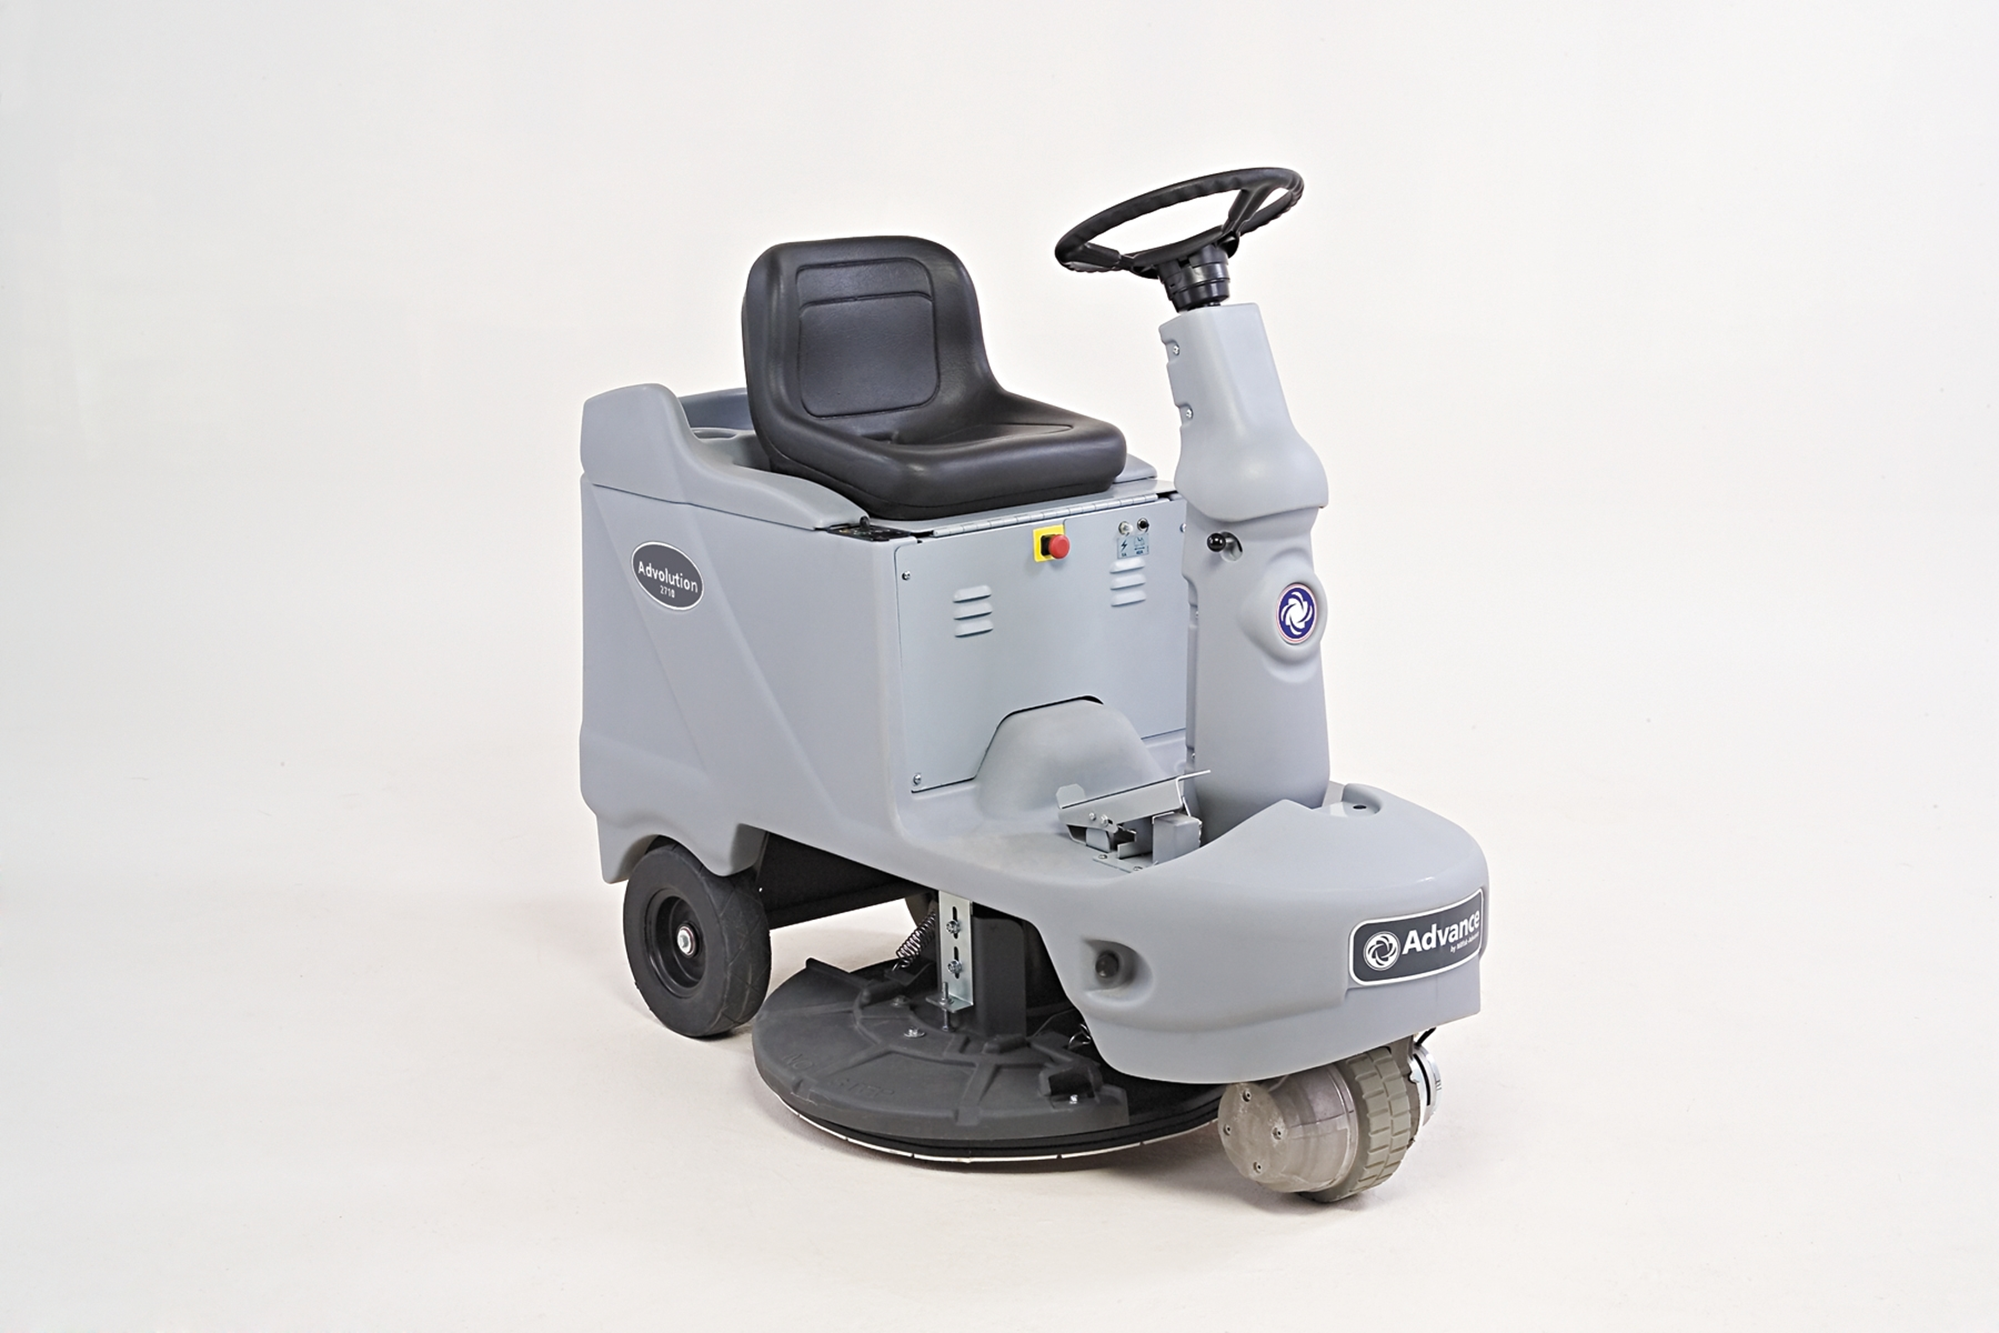 Product, Floor cleaning, Burnishers, Battery, Nilfisk, ADVOLUTION 2710 312AH AGM